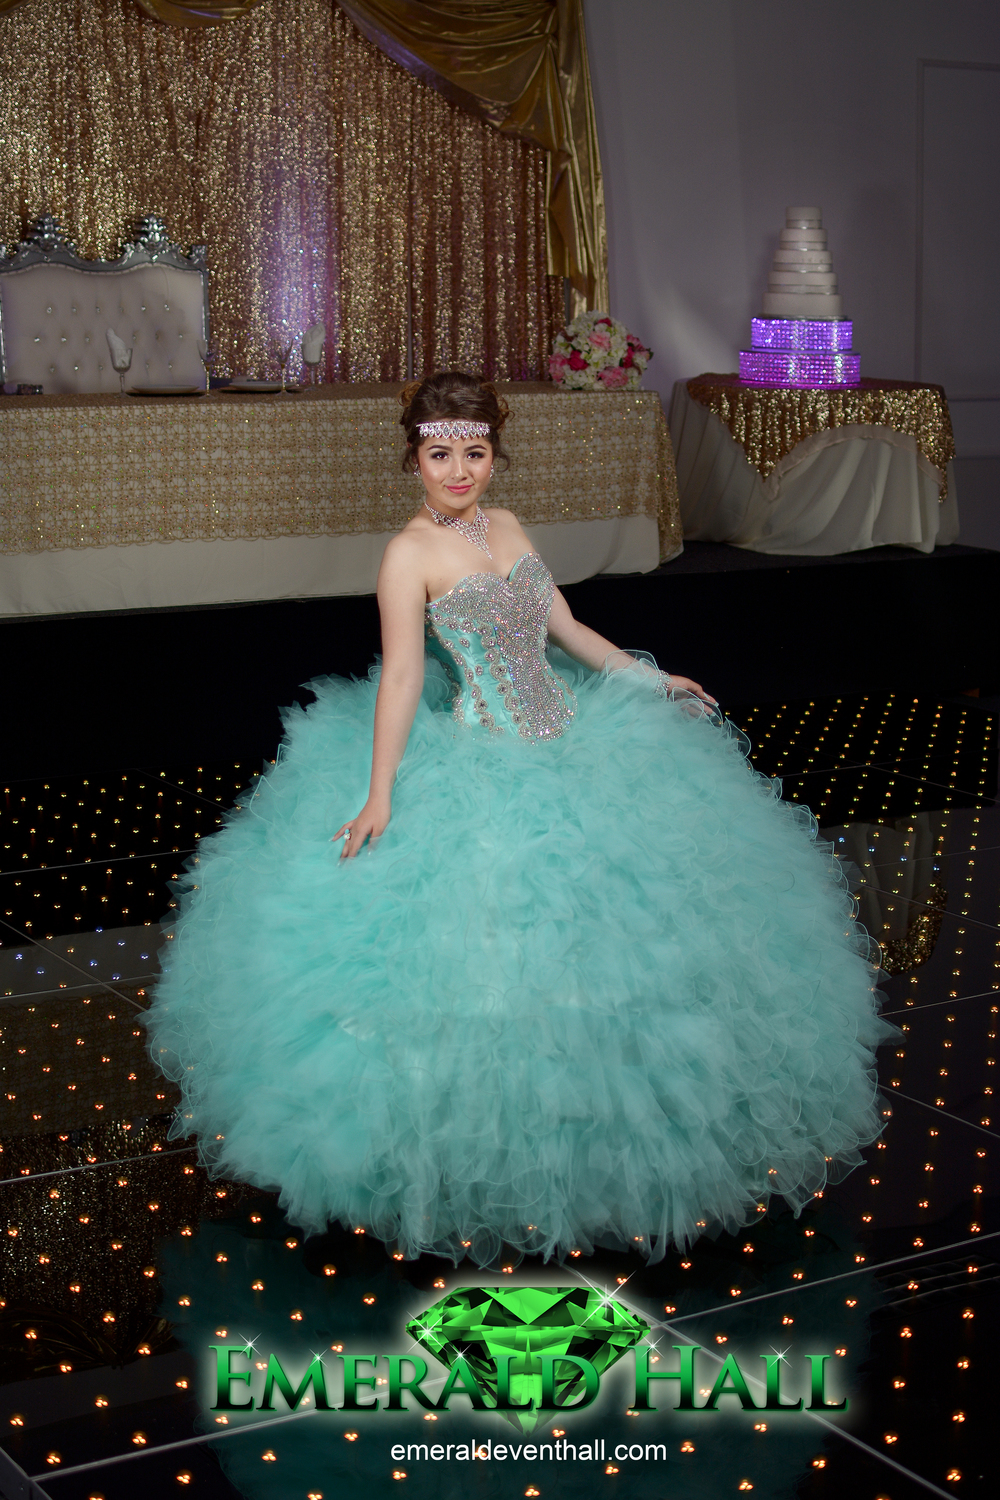 QUINCEANERAS SALON PERRIS BODAS SALON USA SALON MORENO VALLEY SALON INLAND EMPIRE SALON POMONA SALON SAN DIEGO QUINCEANERAS